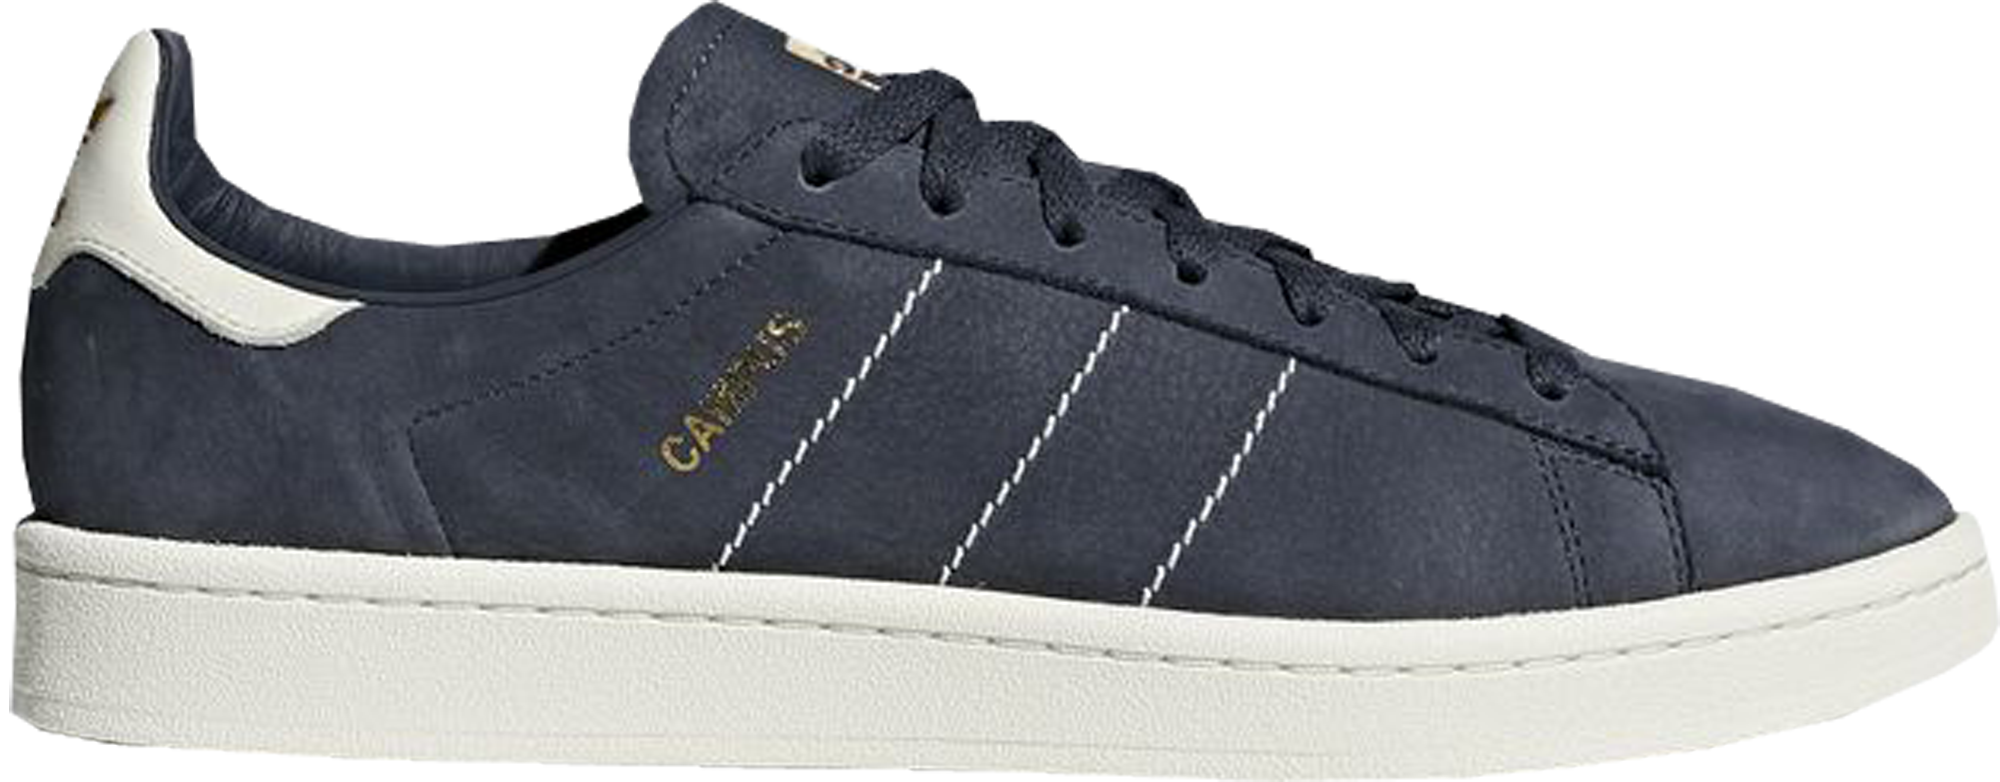 adidas Campus 